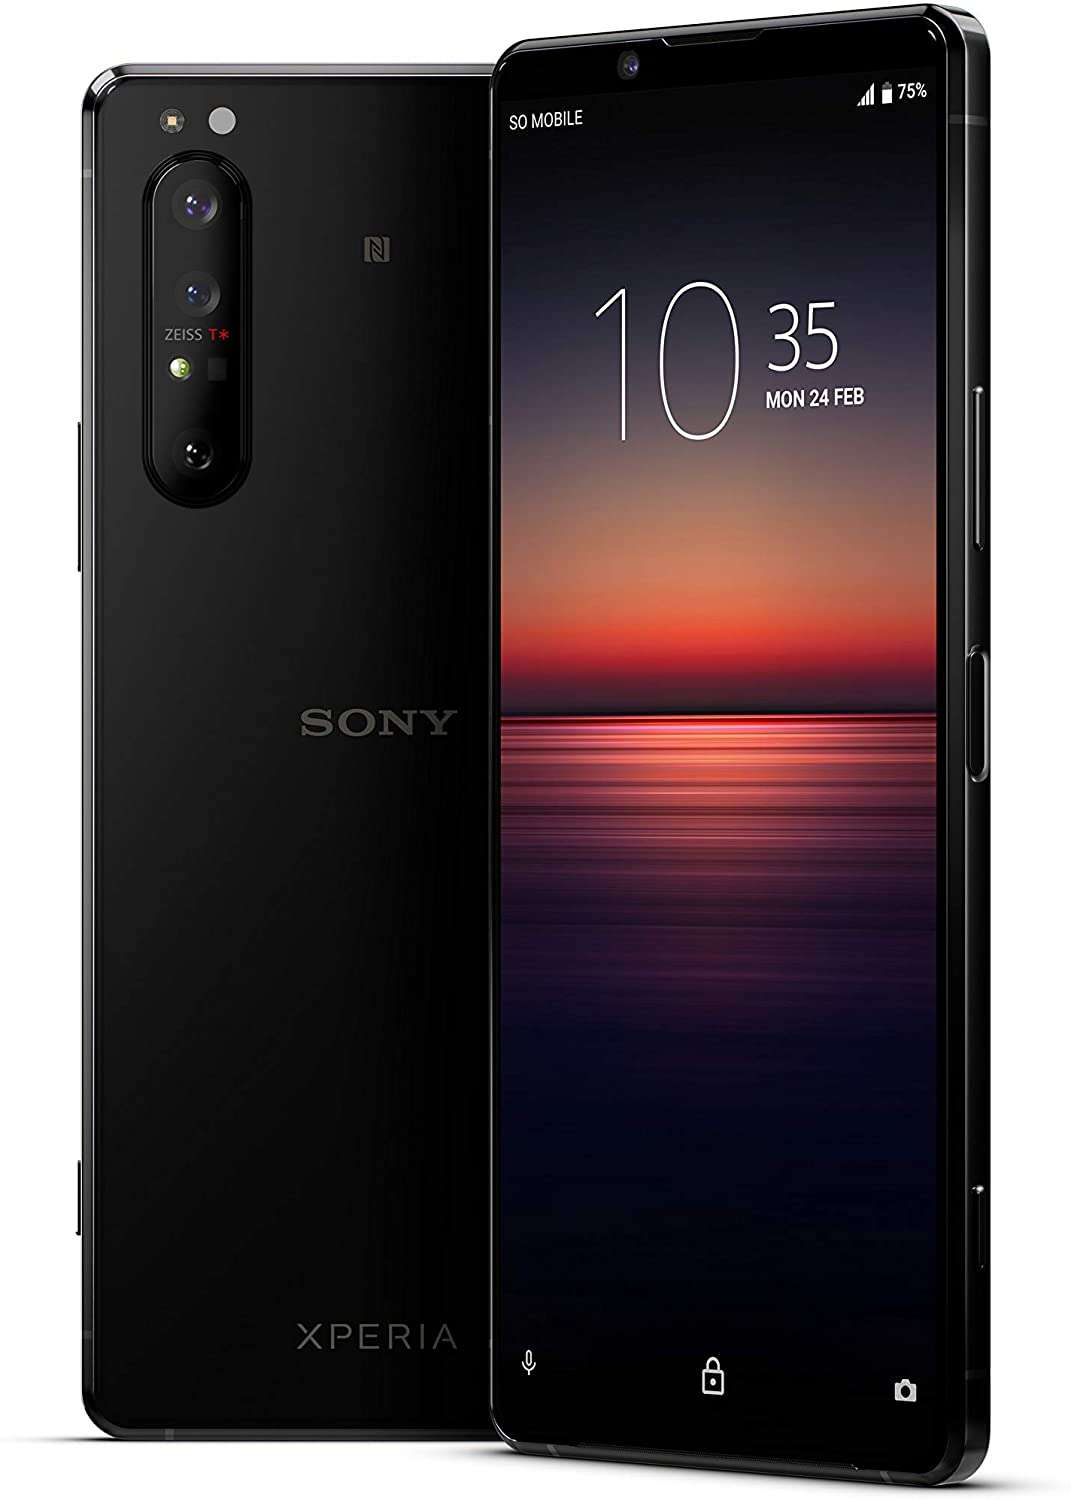 Bon plan : le SONY Xperia 1 II © Amazon